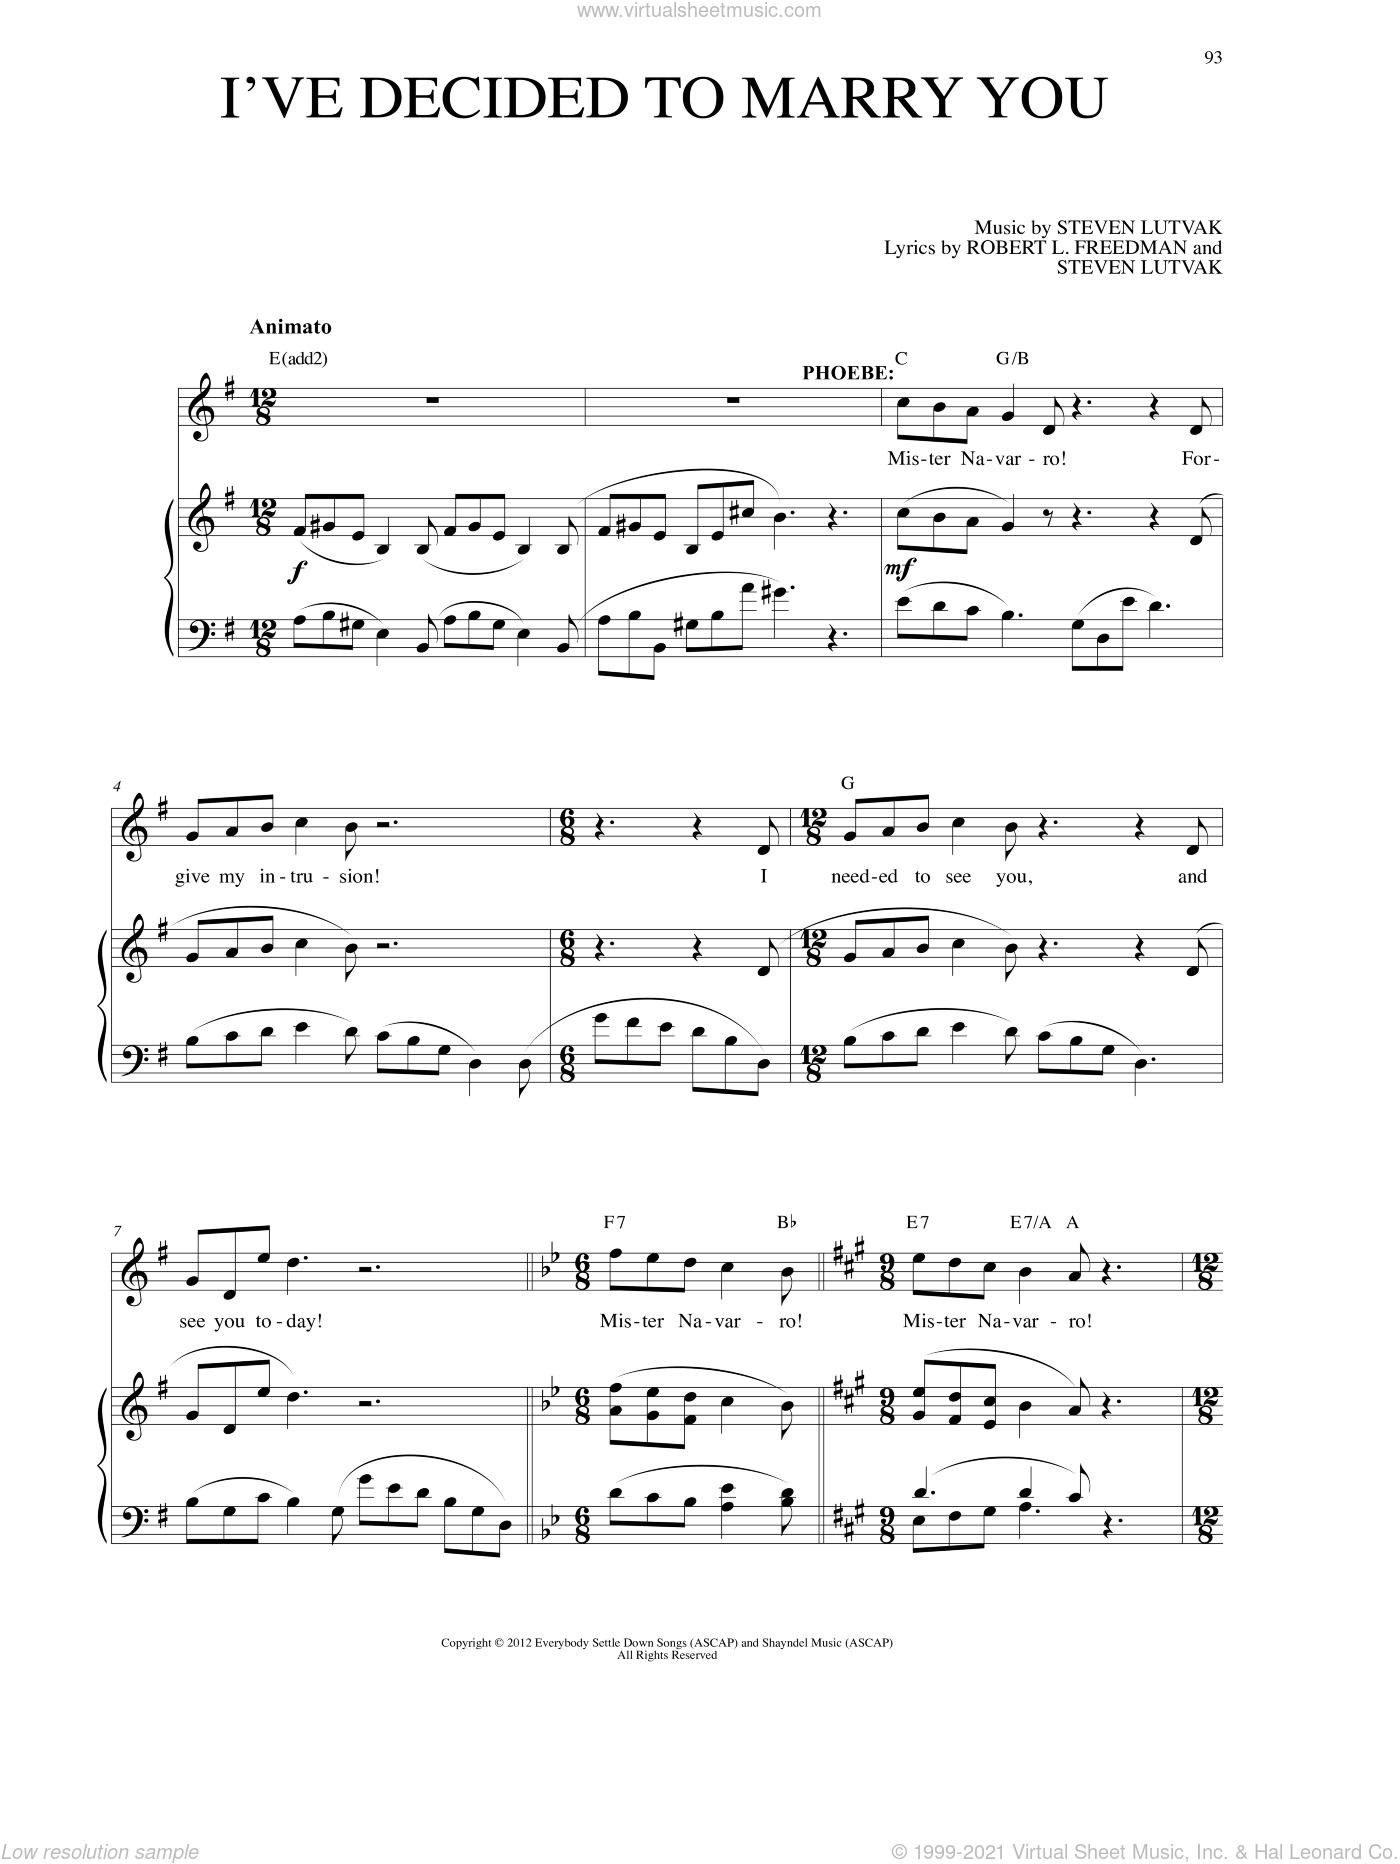 I've Decided To Marry You sheet music for voice and piano by Steven Lutvak, intermediate. Score Image Preview.